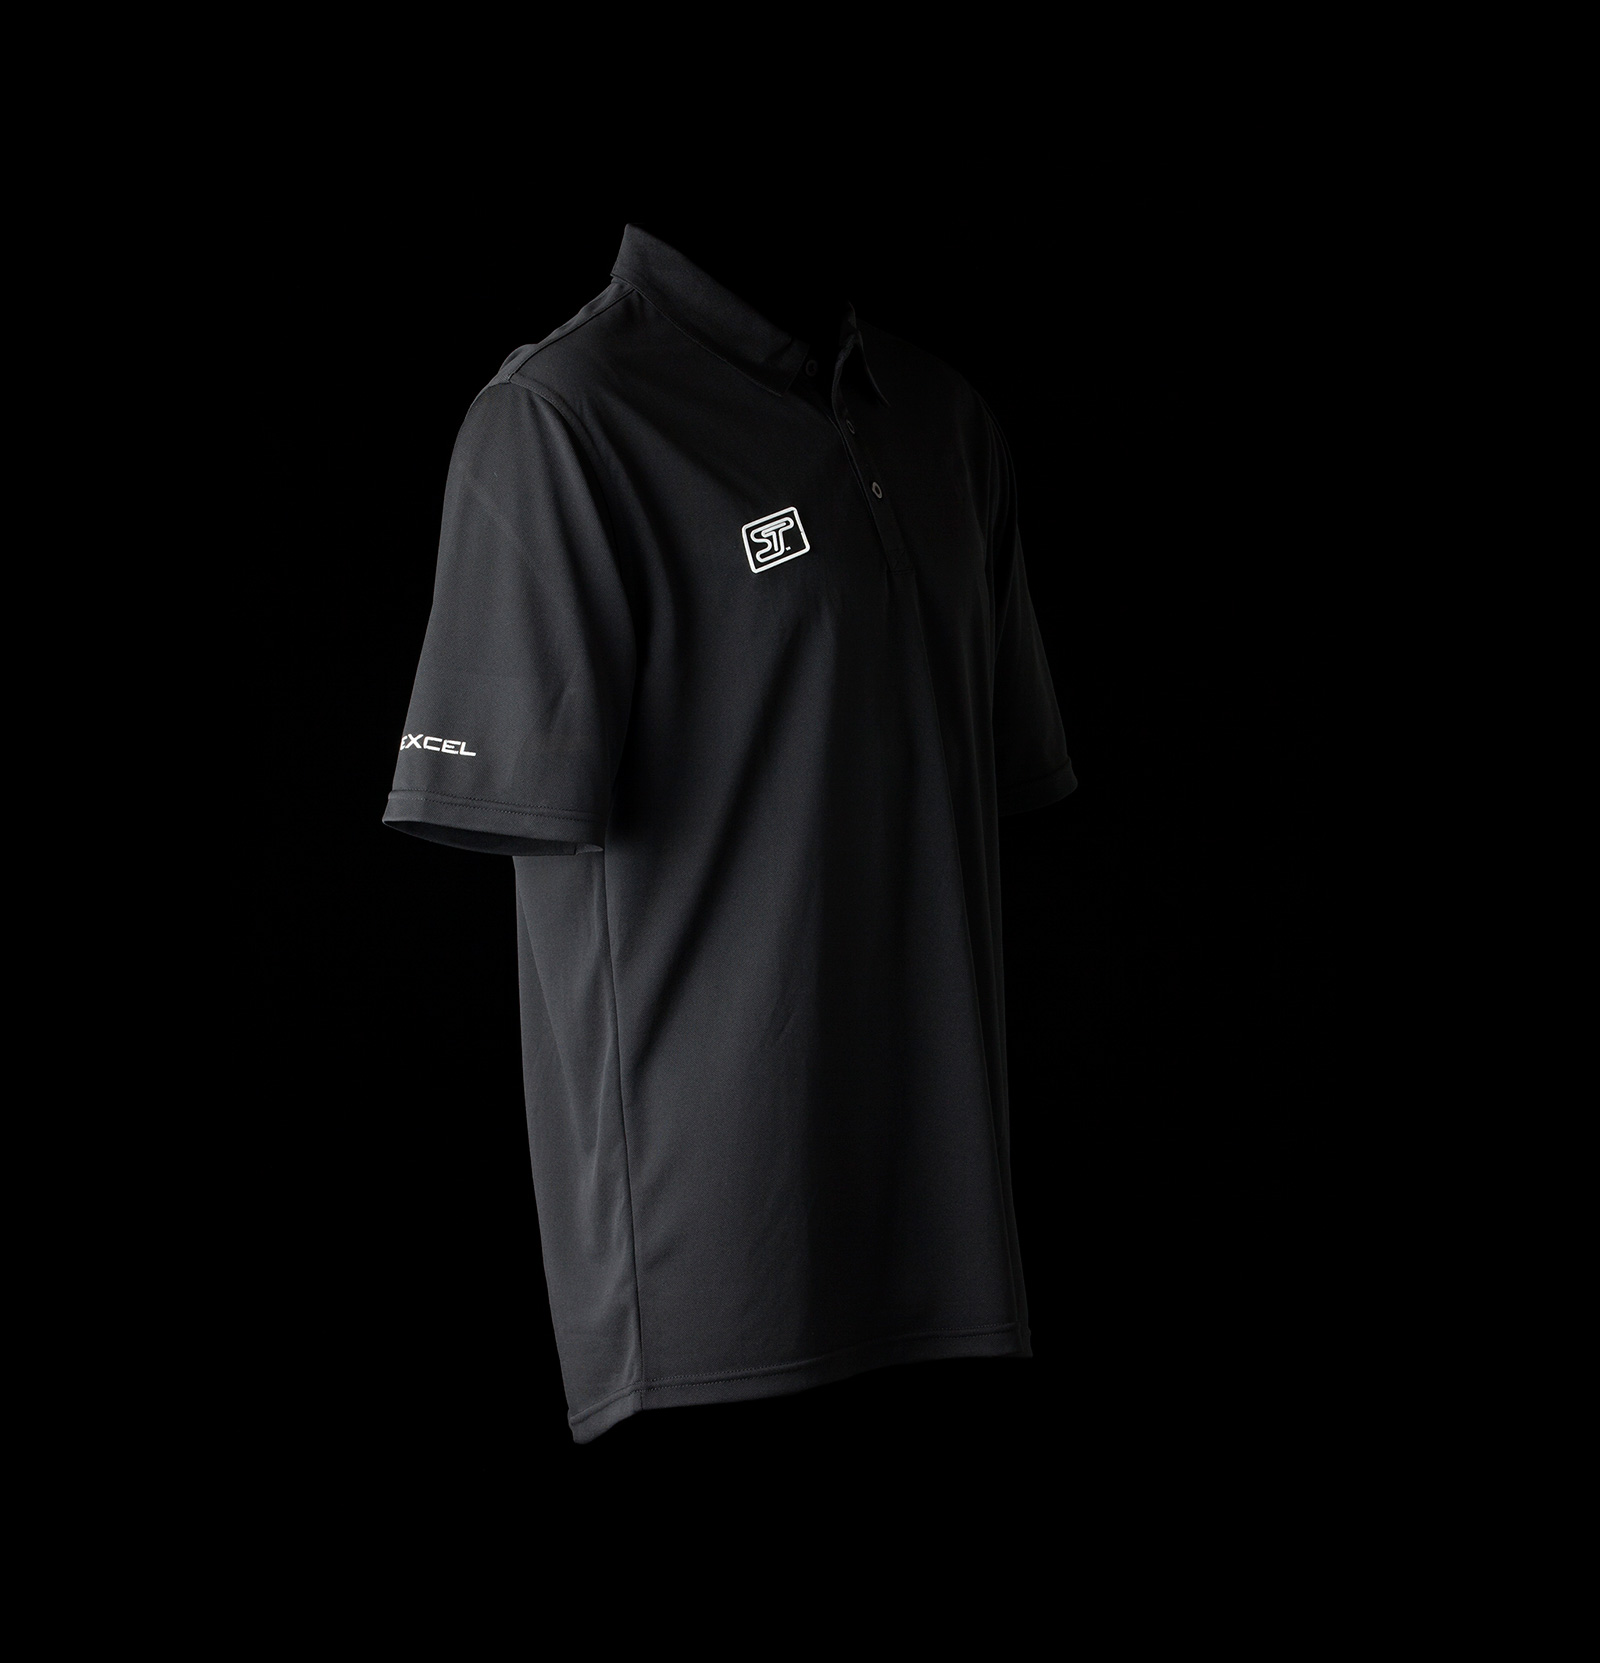 Excel-Polo-Shirt-Promo-63